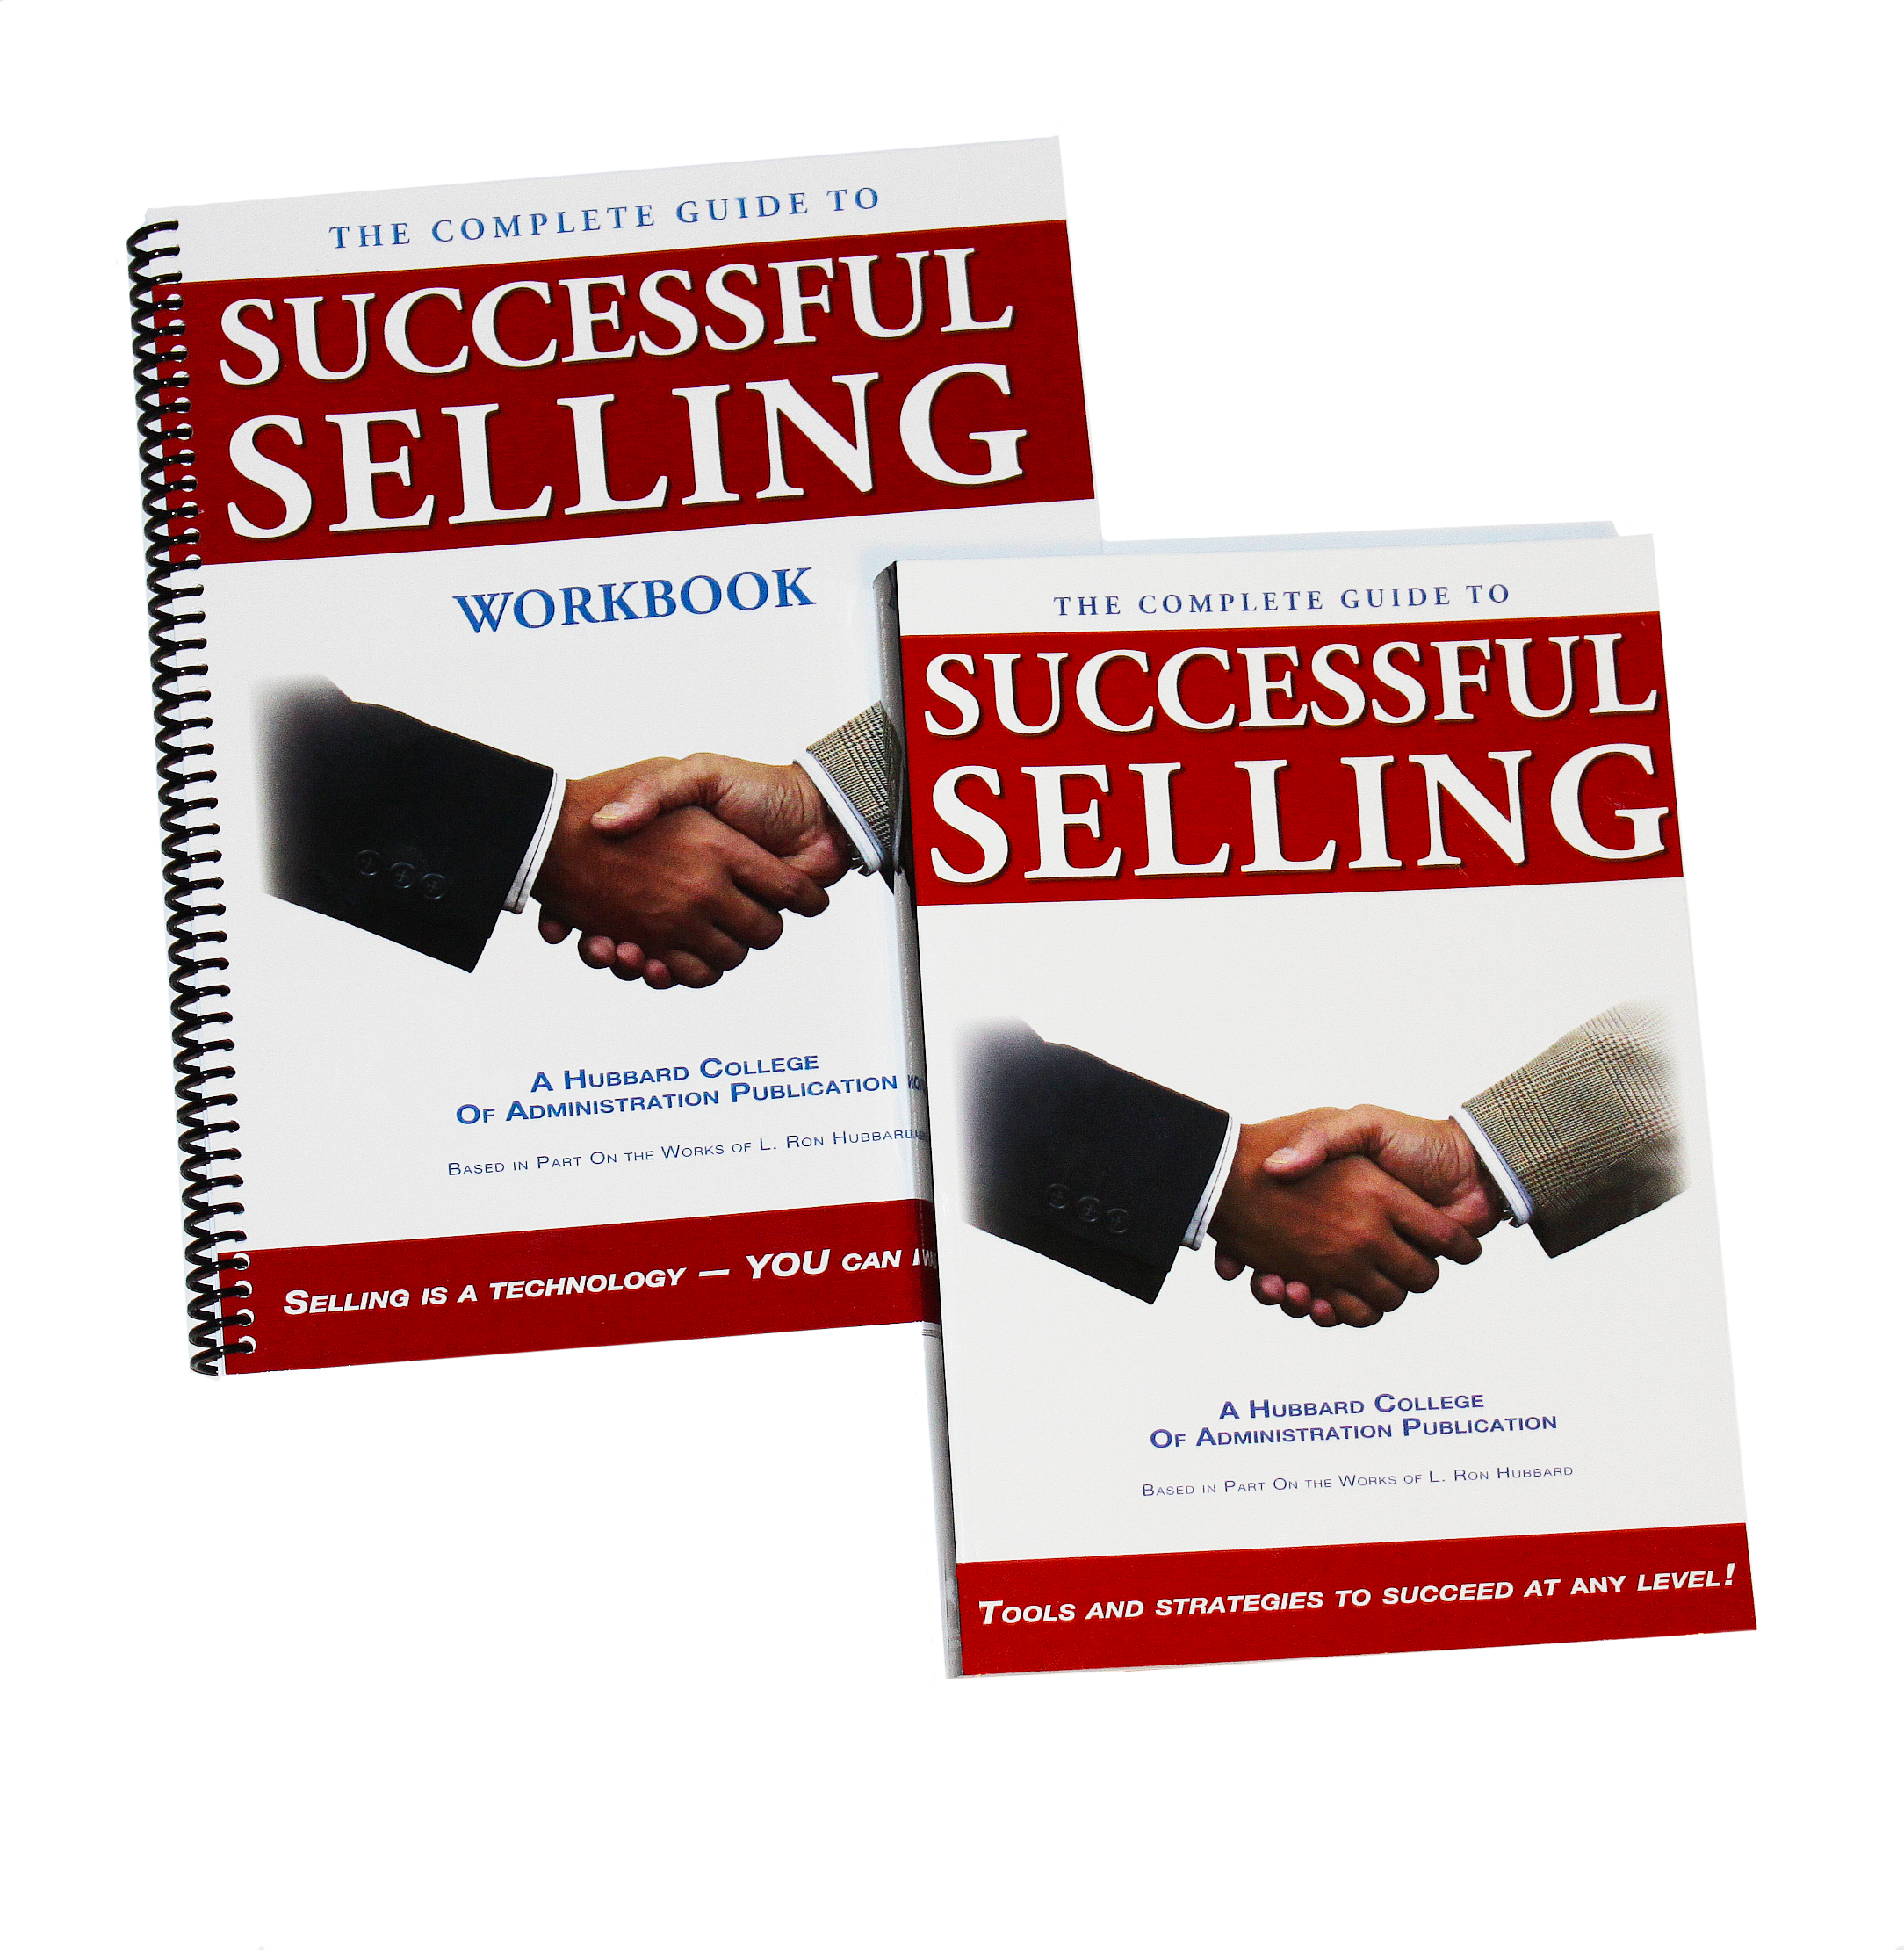 The Complete Guide to Successful Selling Package